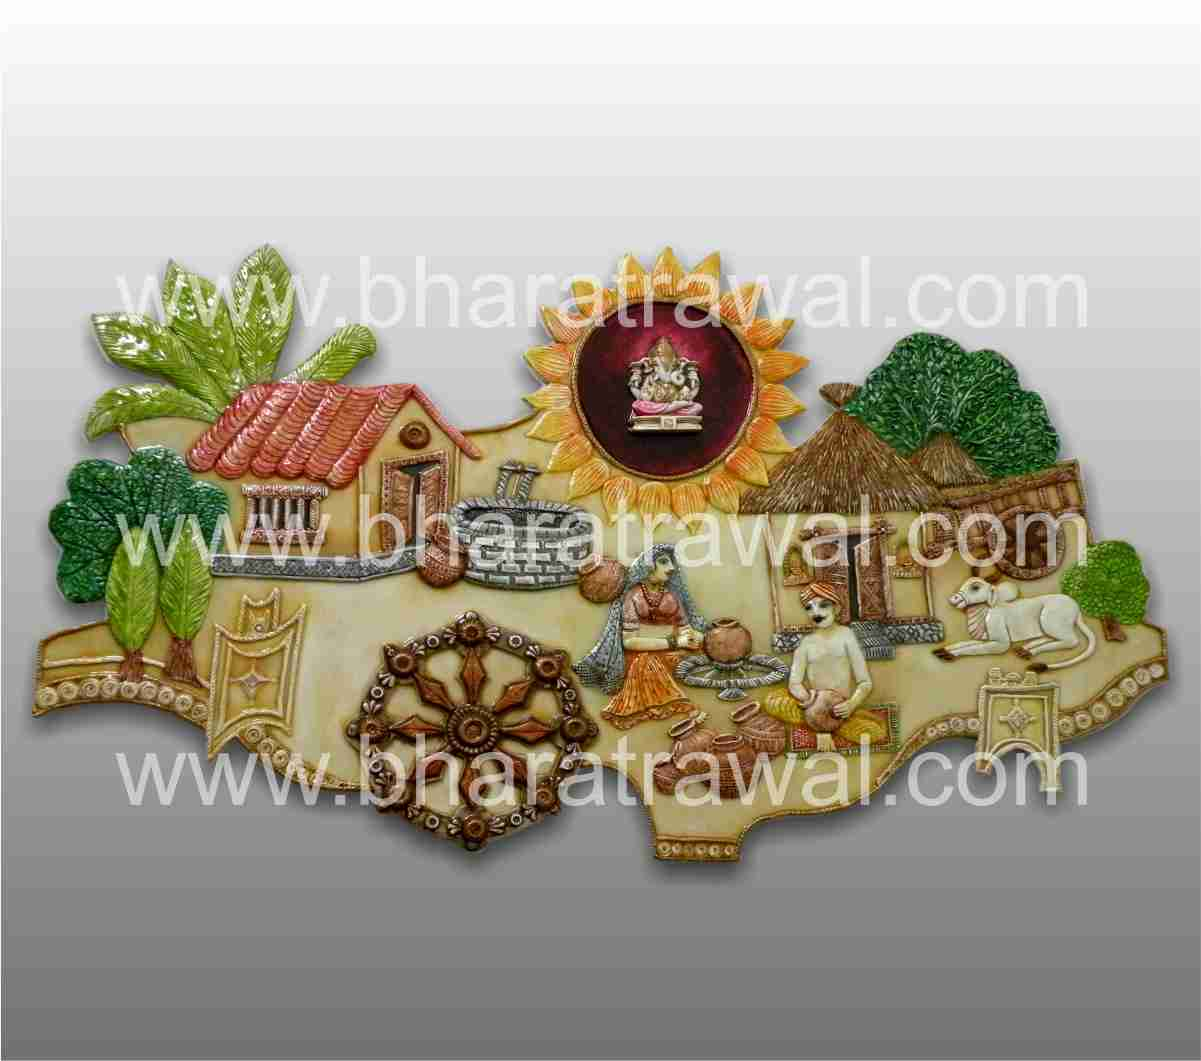 Mural art by muralguru bharat rawal ceramic murals a for Ceramic mural painting